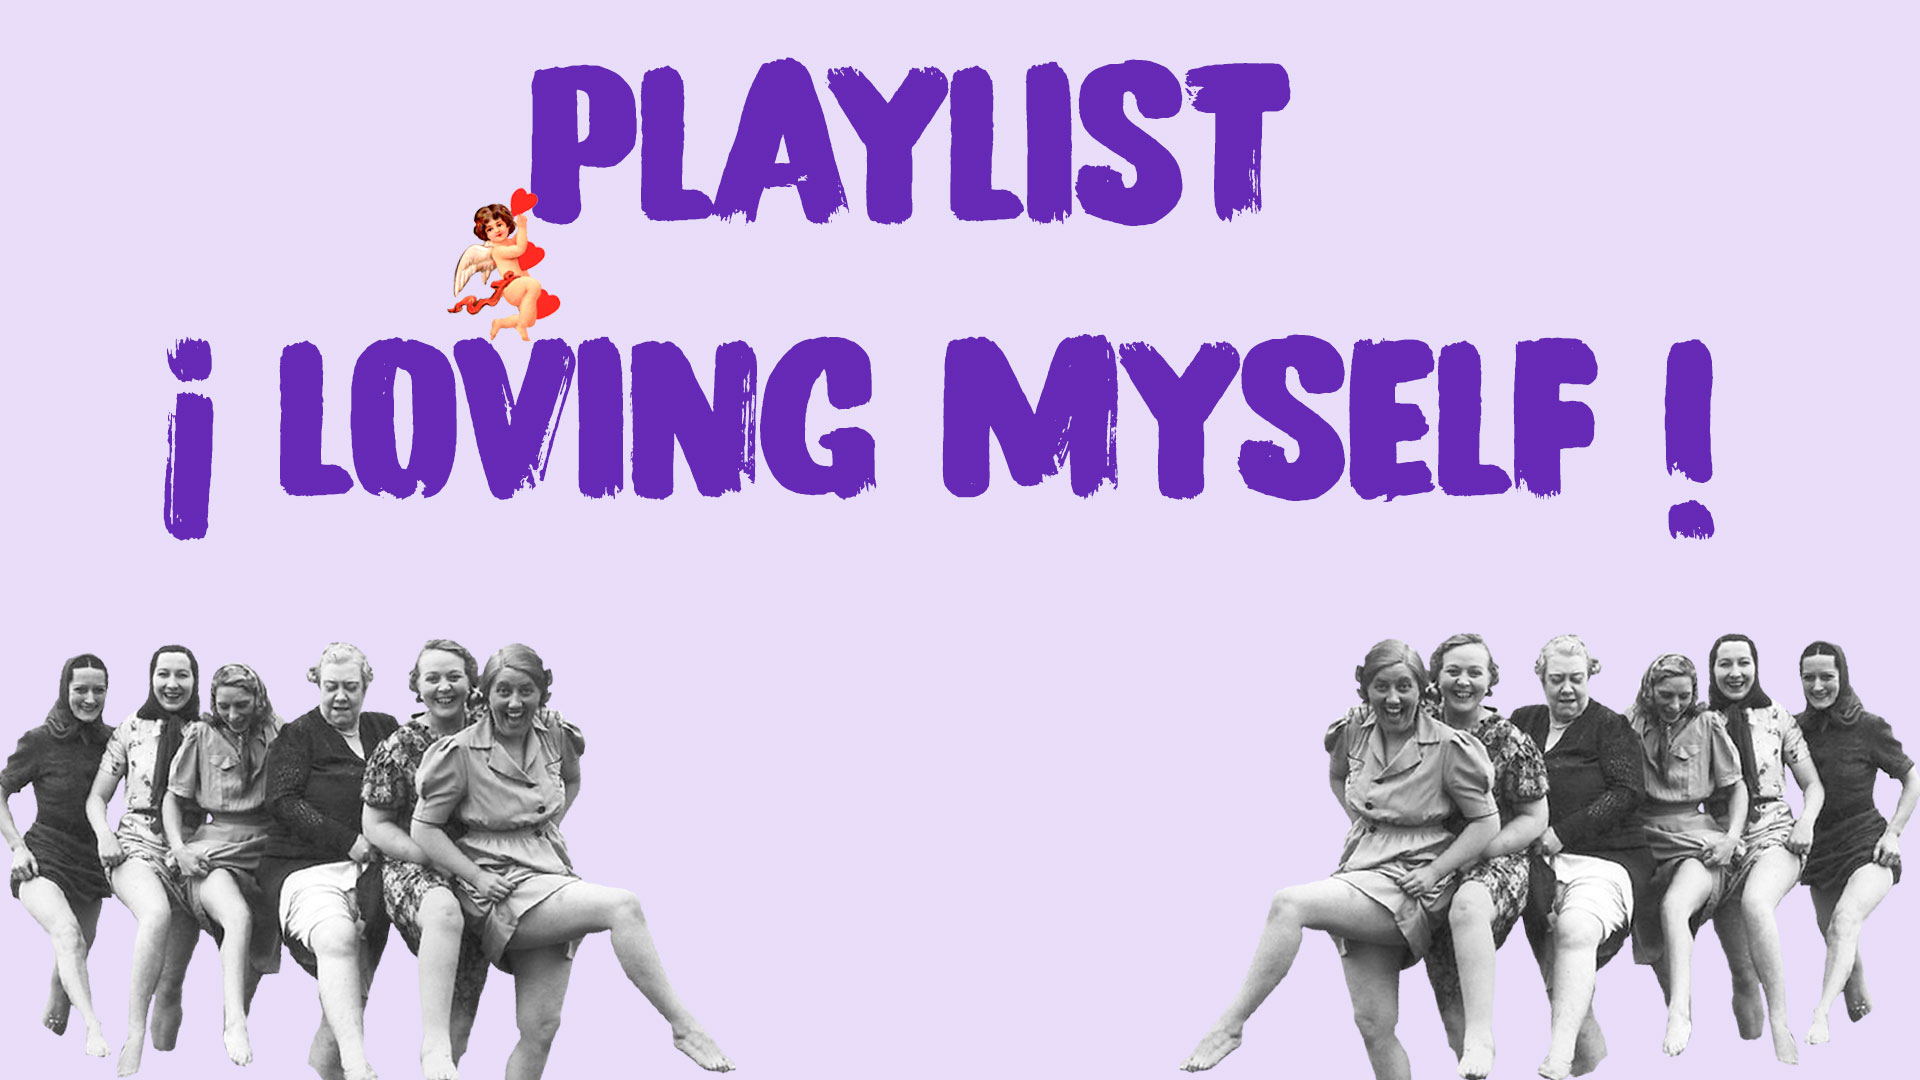 Playlist: Loving myself